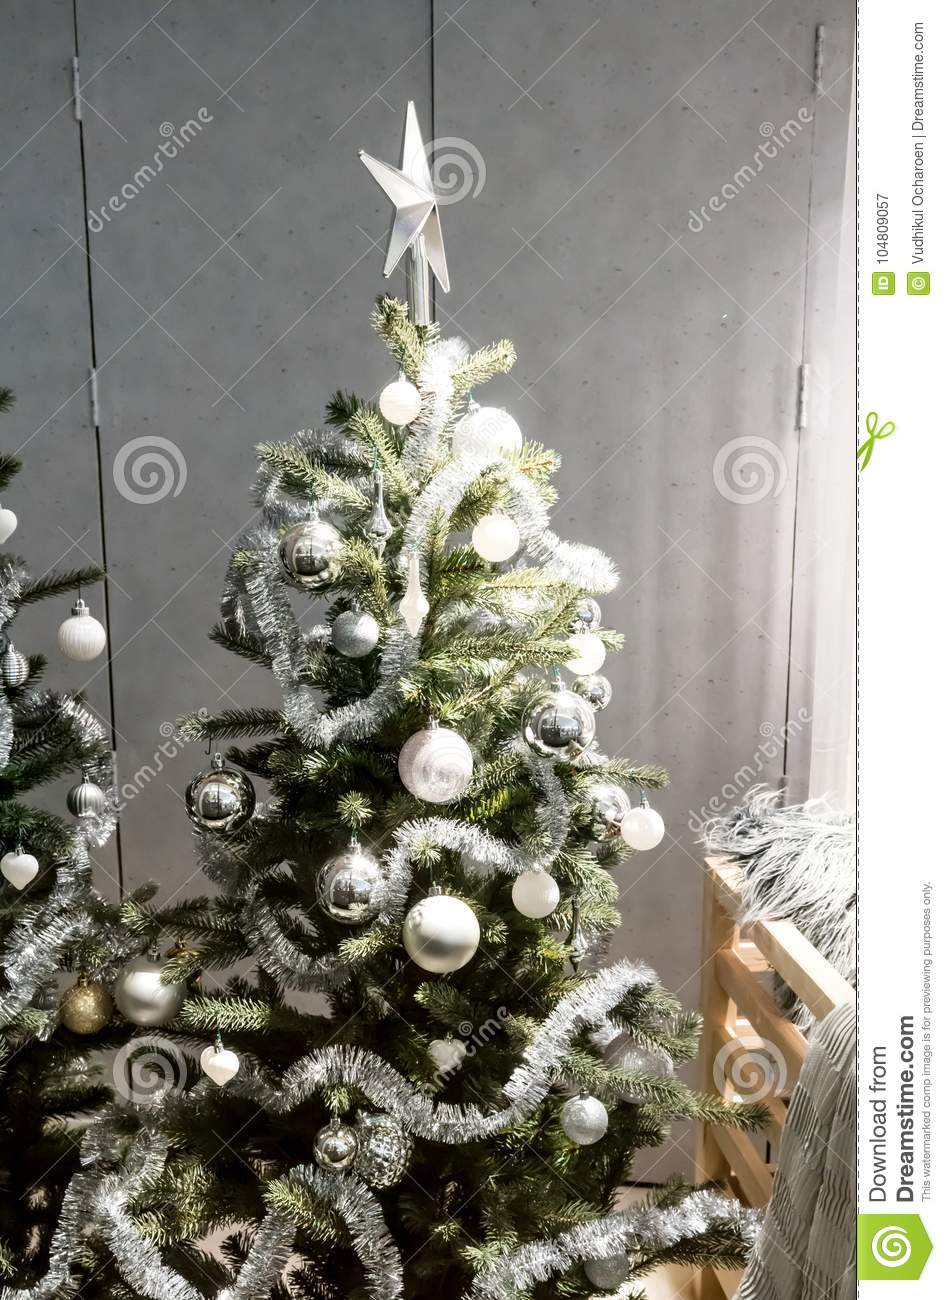 Tinsel Christmas Tree.White And Silver Decorative Christmas Tree With Tinsel